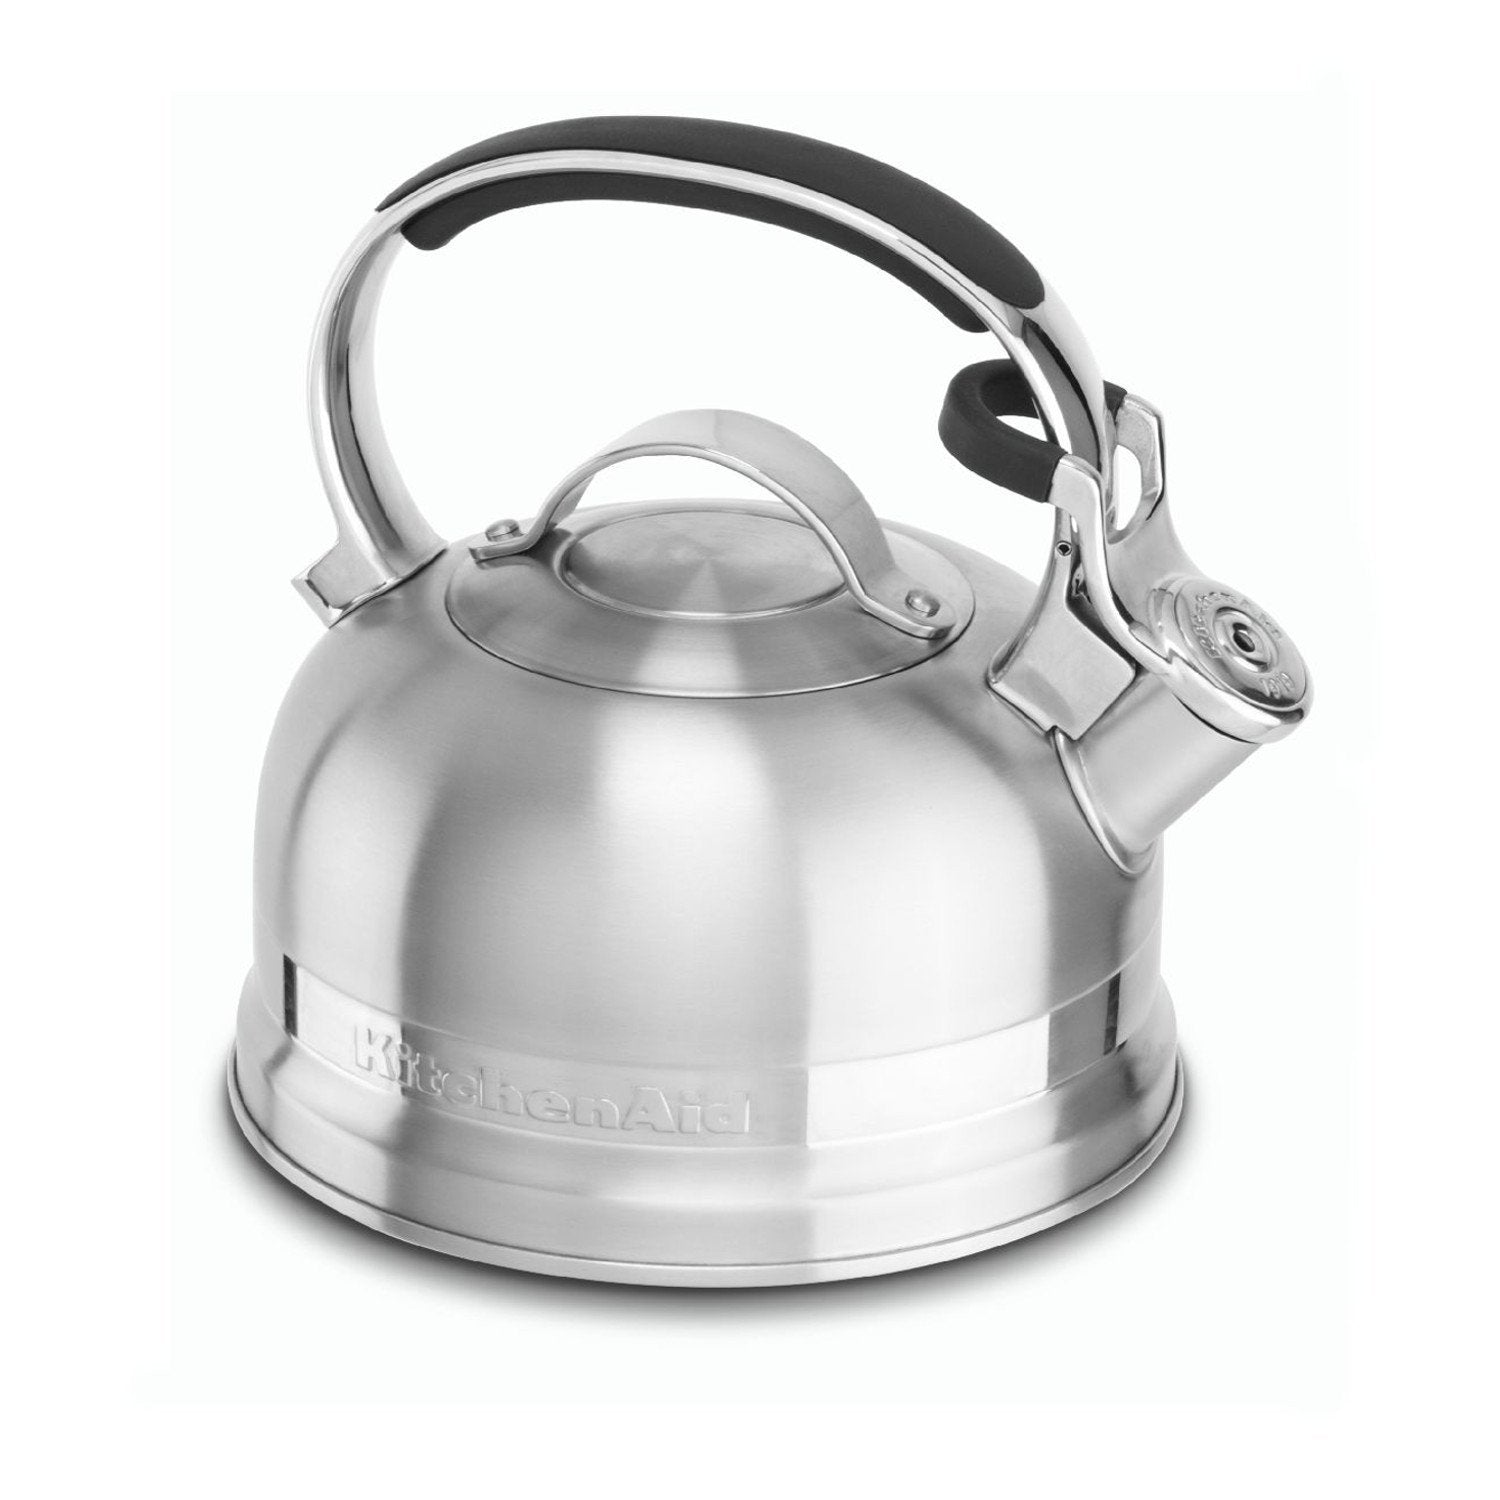 KitchenAid 2.0-Quart Kettle with Full Stainless Steel Handle and Trim Band - KTST20SBST